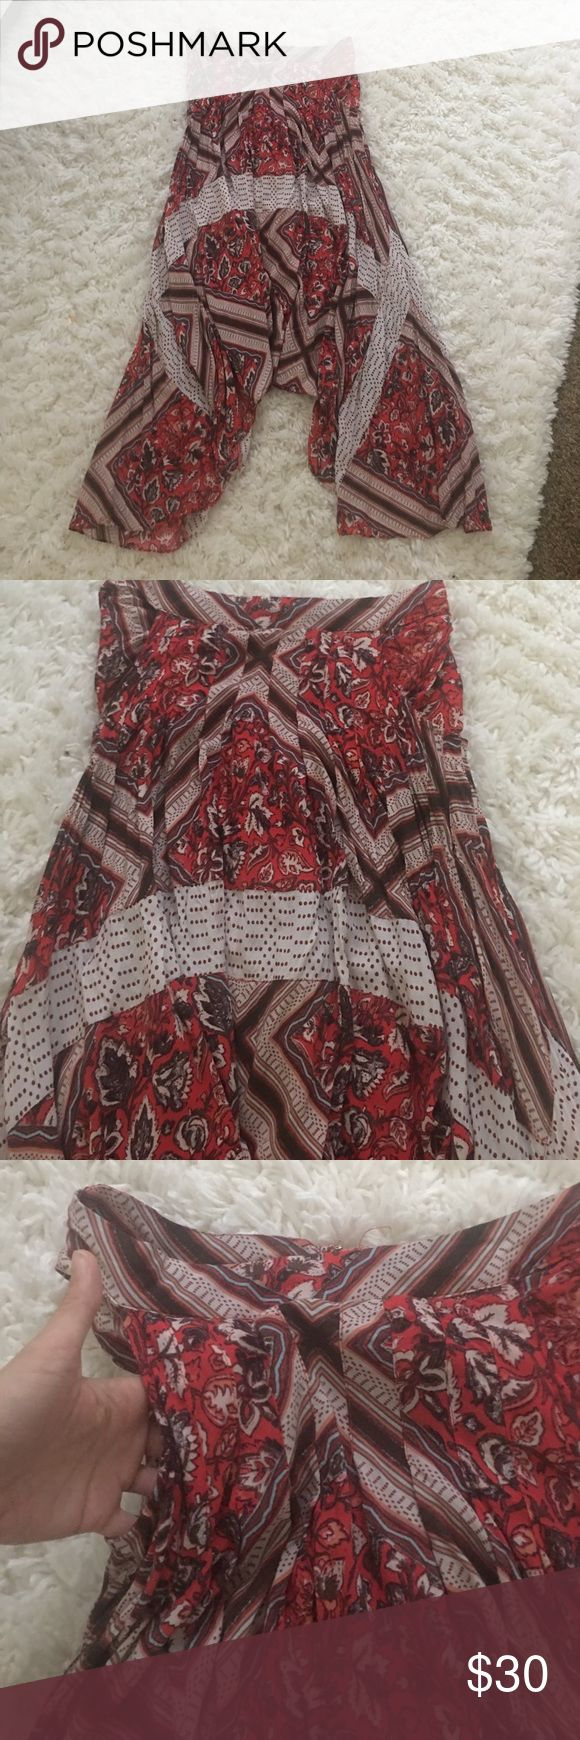 Free people skirt Beautiful red free people skirt! I bought on posh mark and it came with unadvertised flaws🙄. Please note two small holes at pleat in back of skirt. Very hard to see especial with the flow of this dress but they are there. As my selling price reflects. Free People Skirts Midi